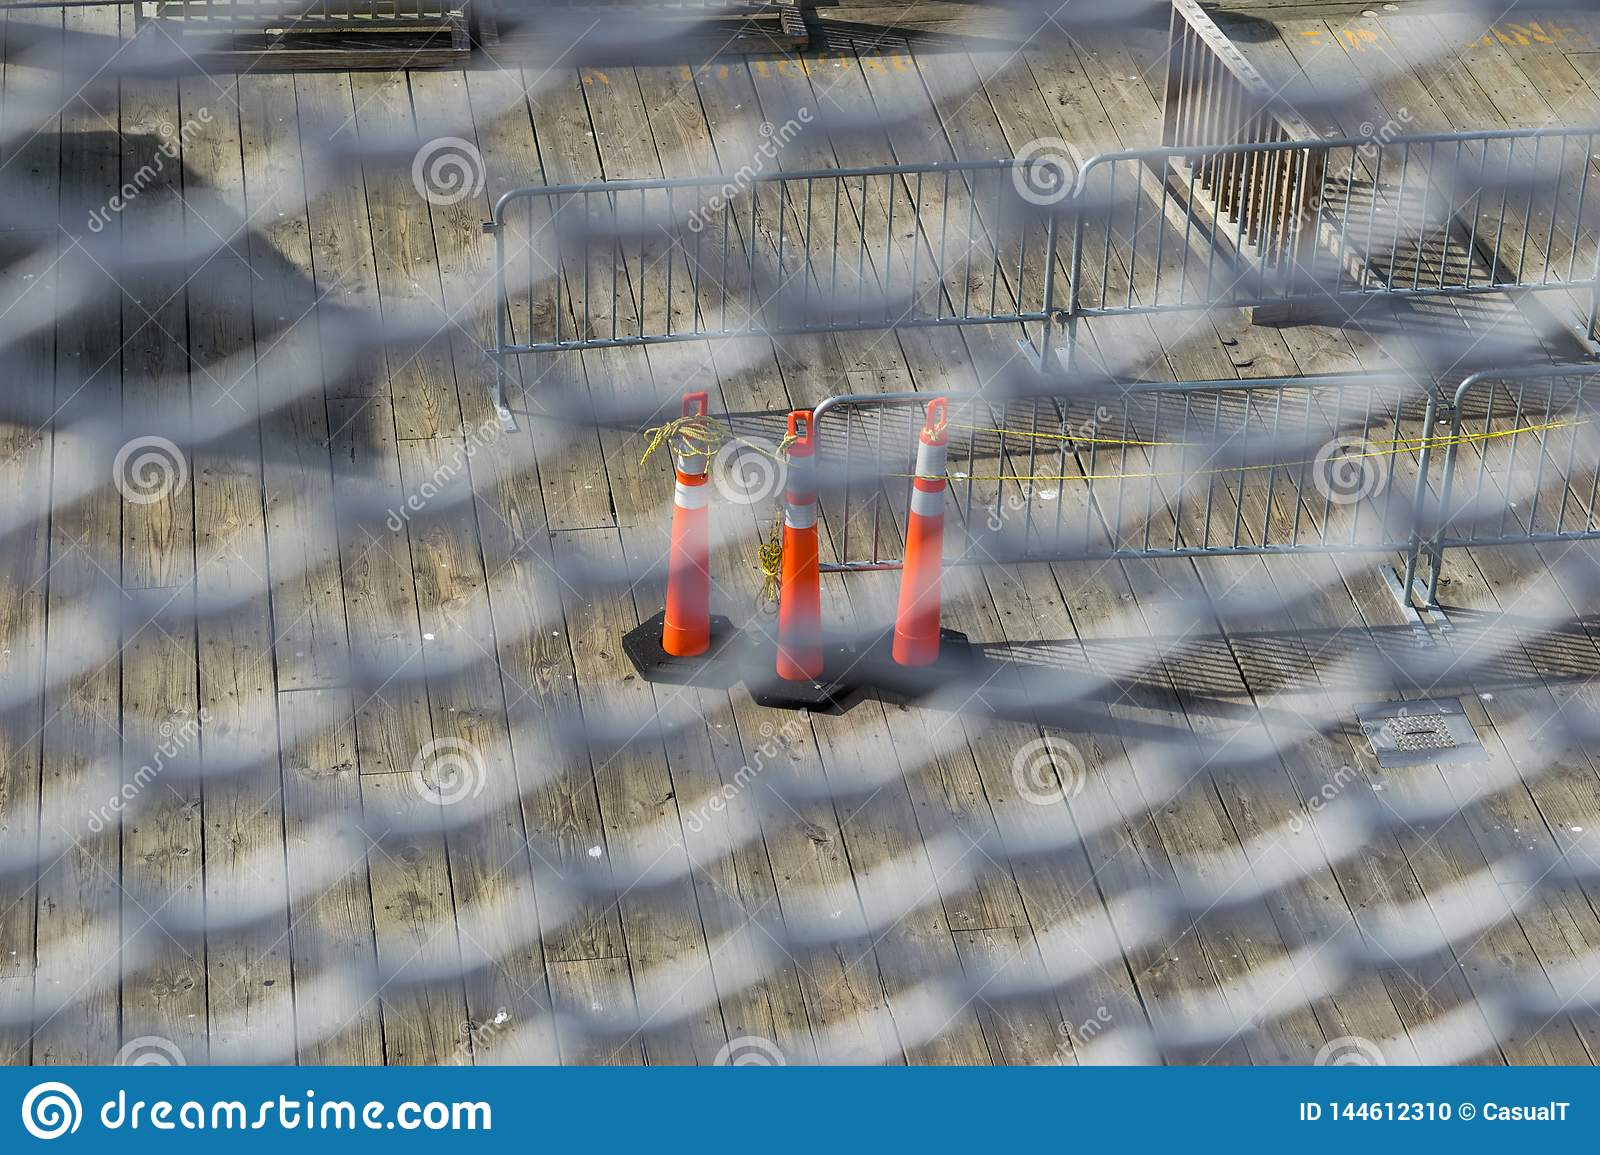 Traffic cones on a slated wooden floor, seen through a white metal grid